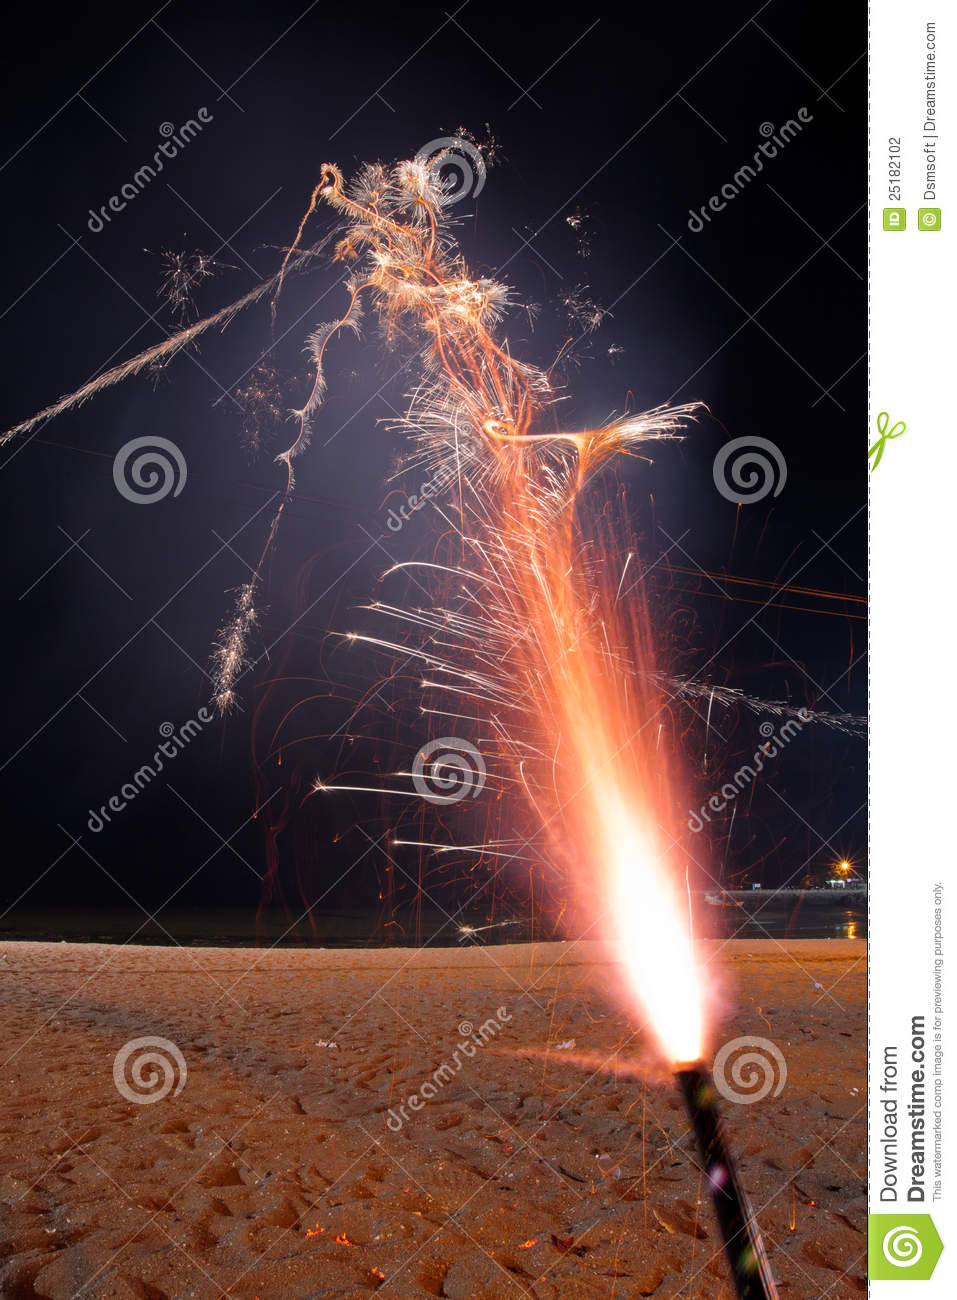 Roman Candle Fireworks Stock Photography - Image: 25182102